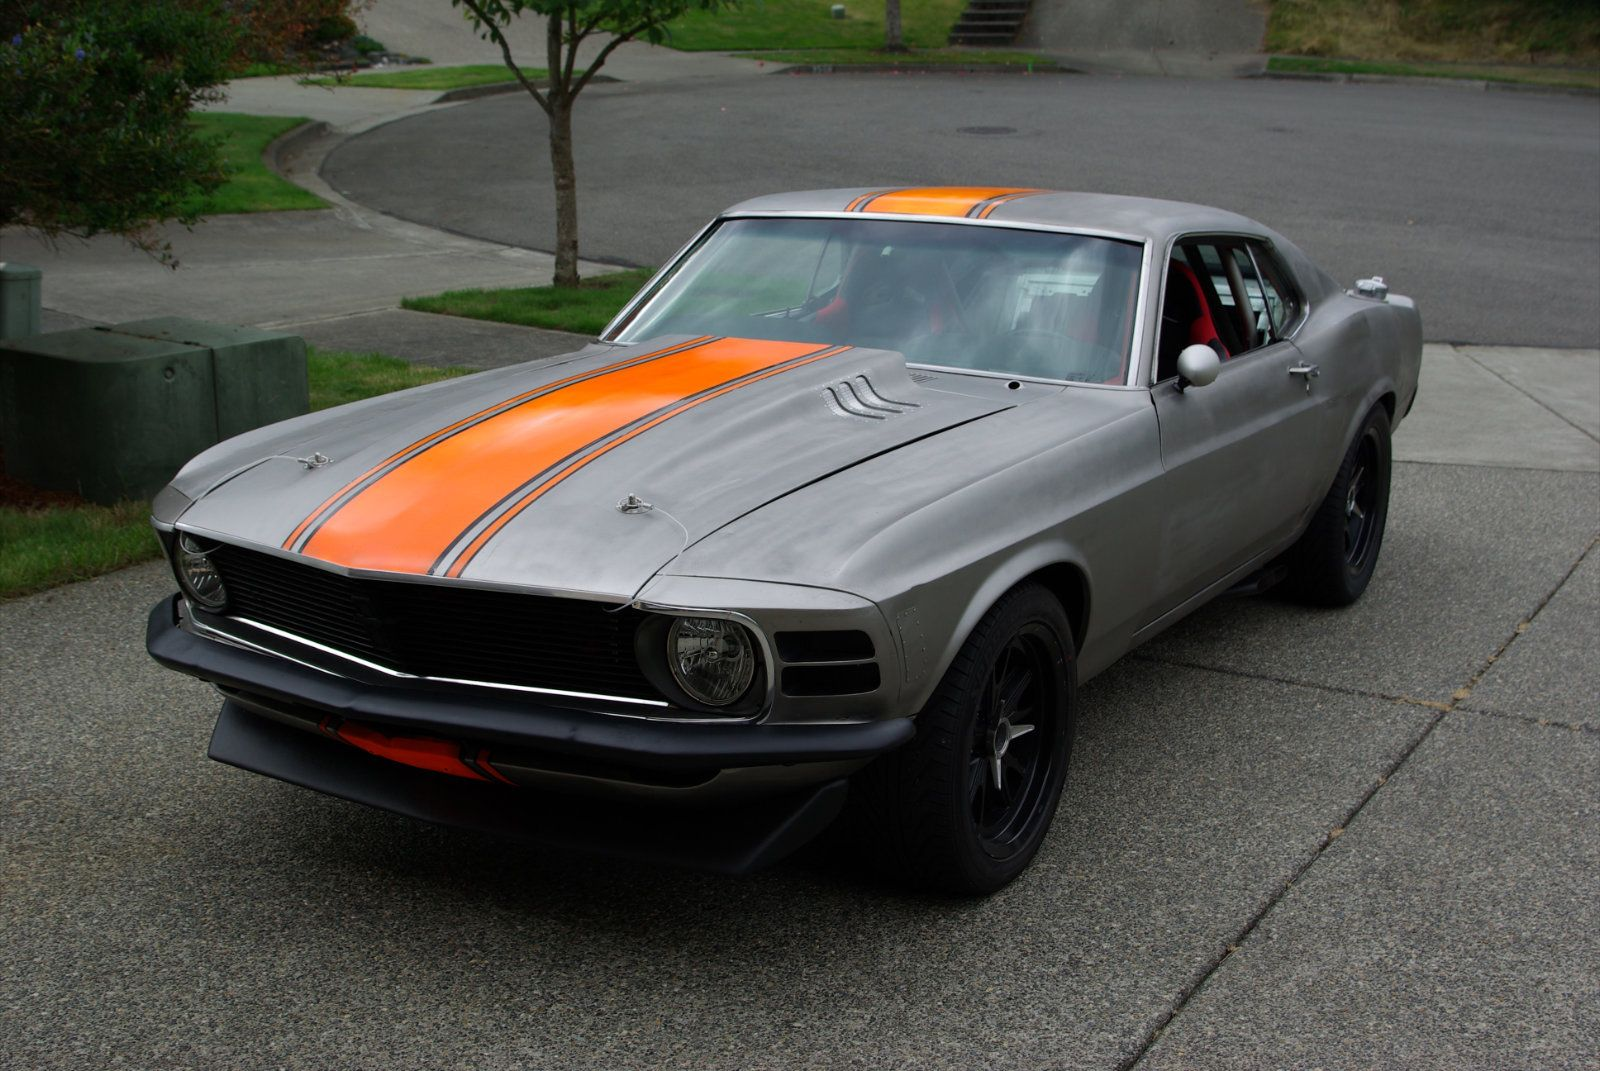 70 Mustang Fastback #mustang #1970 #restomod | Awesome 60s Mustangs Restomods | Pinterest | Cars ...